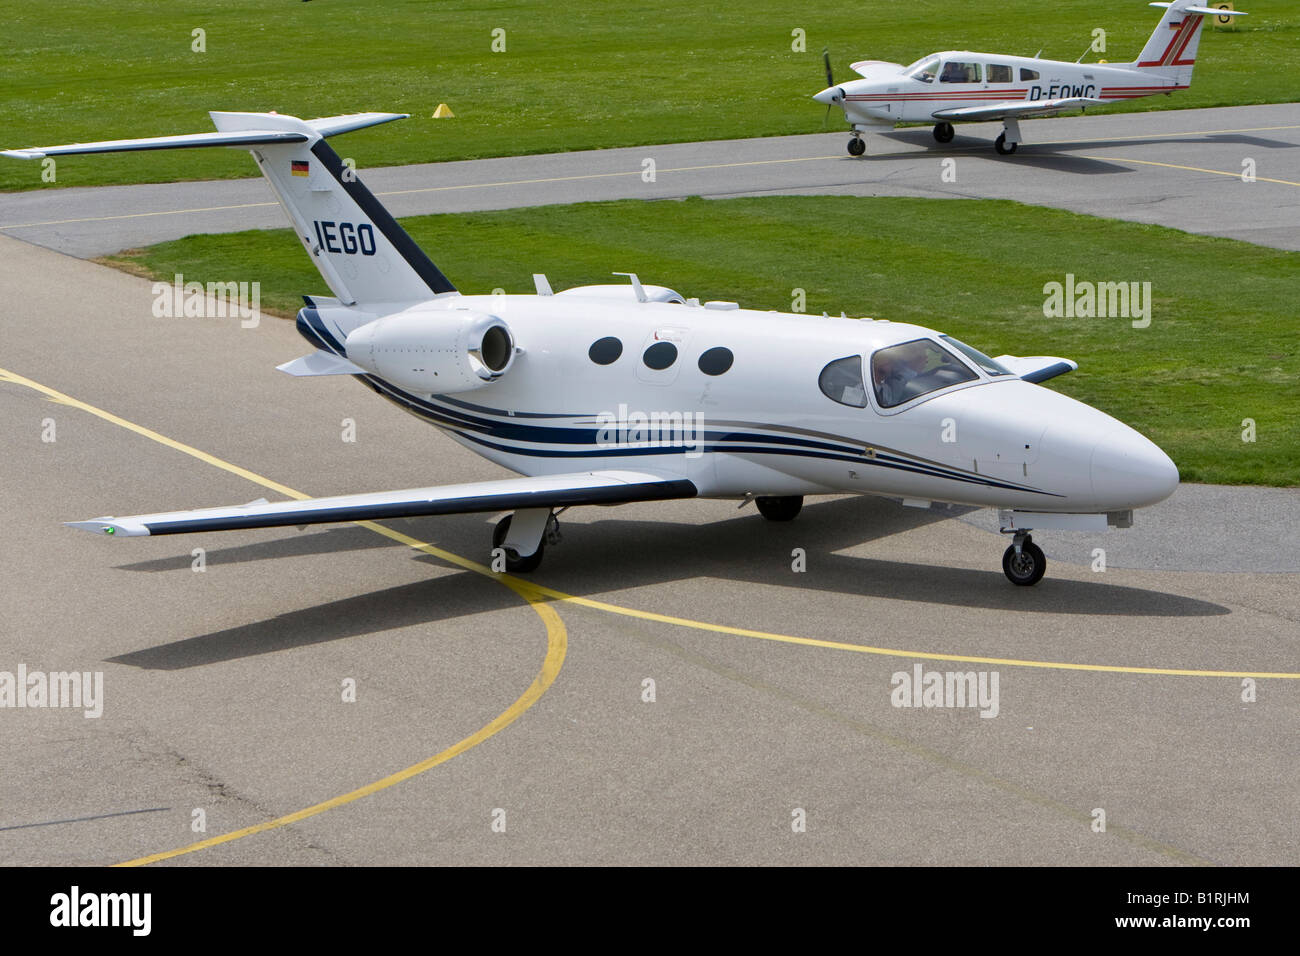 Small, twin-engined business jet taxiing on the runway of Mannheim Airport, Baden-Wuerttemberg, Germany, Europe - Stock Image